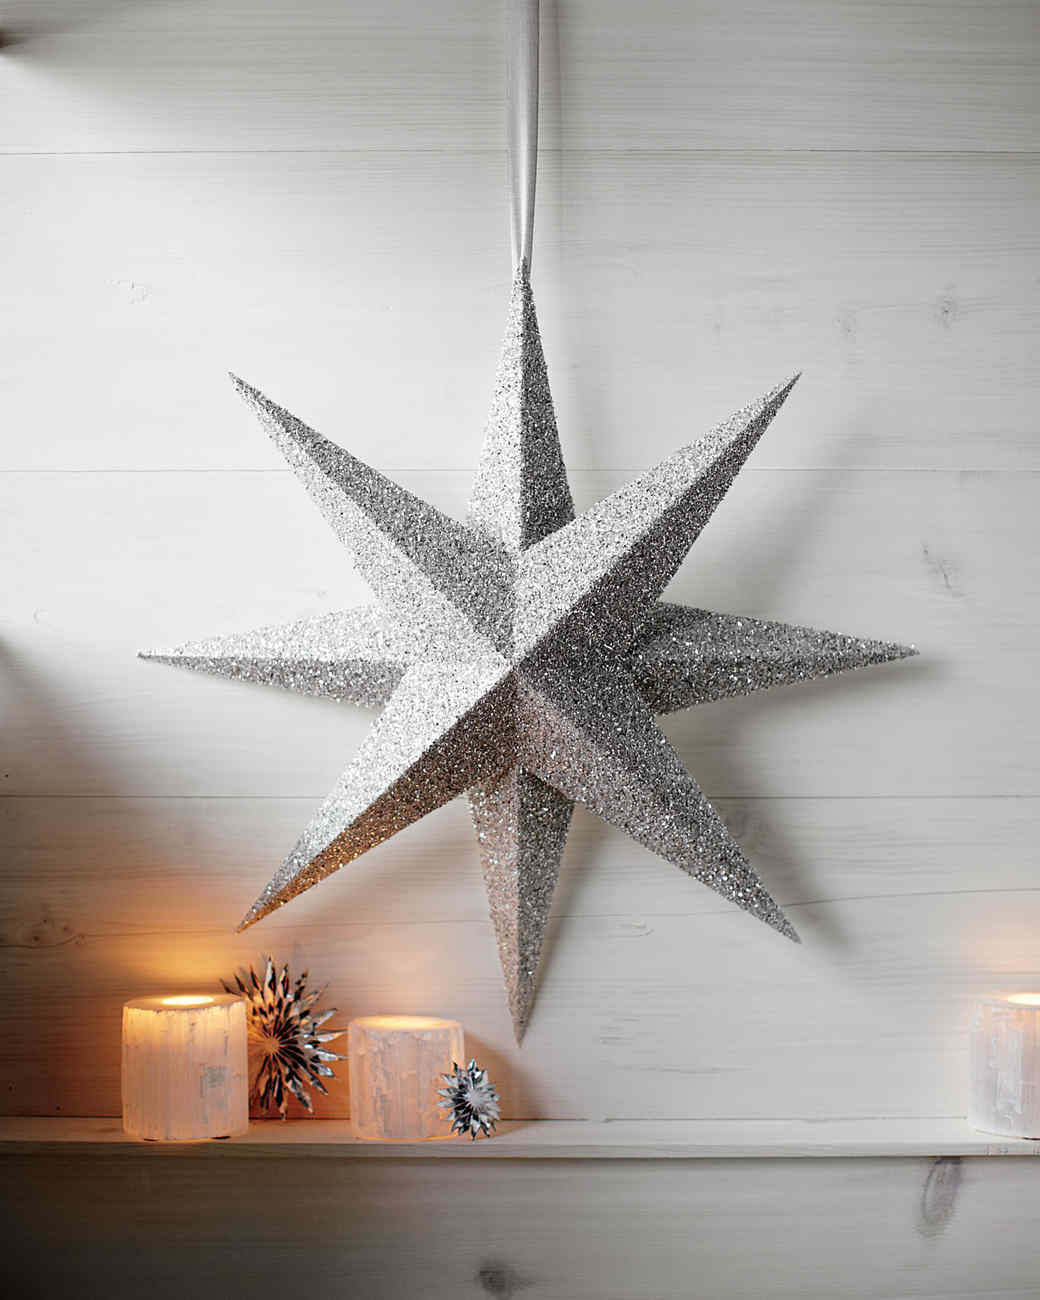 The Star System: Christmas Star Decorations